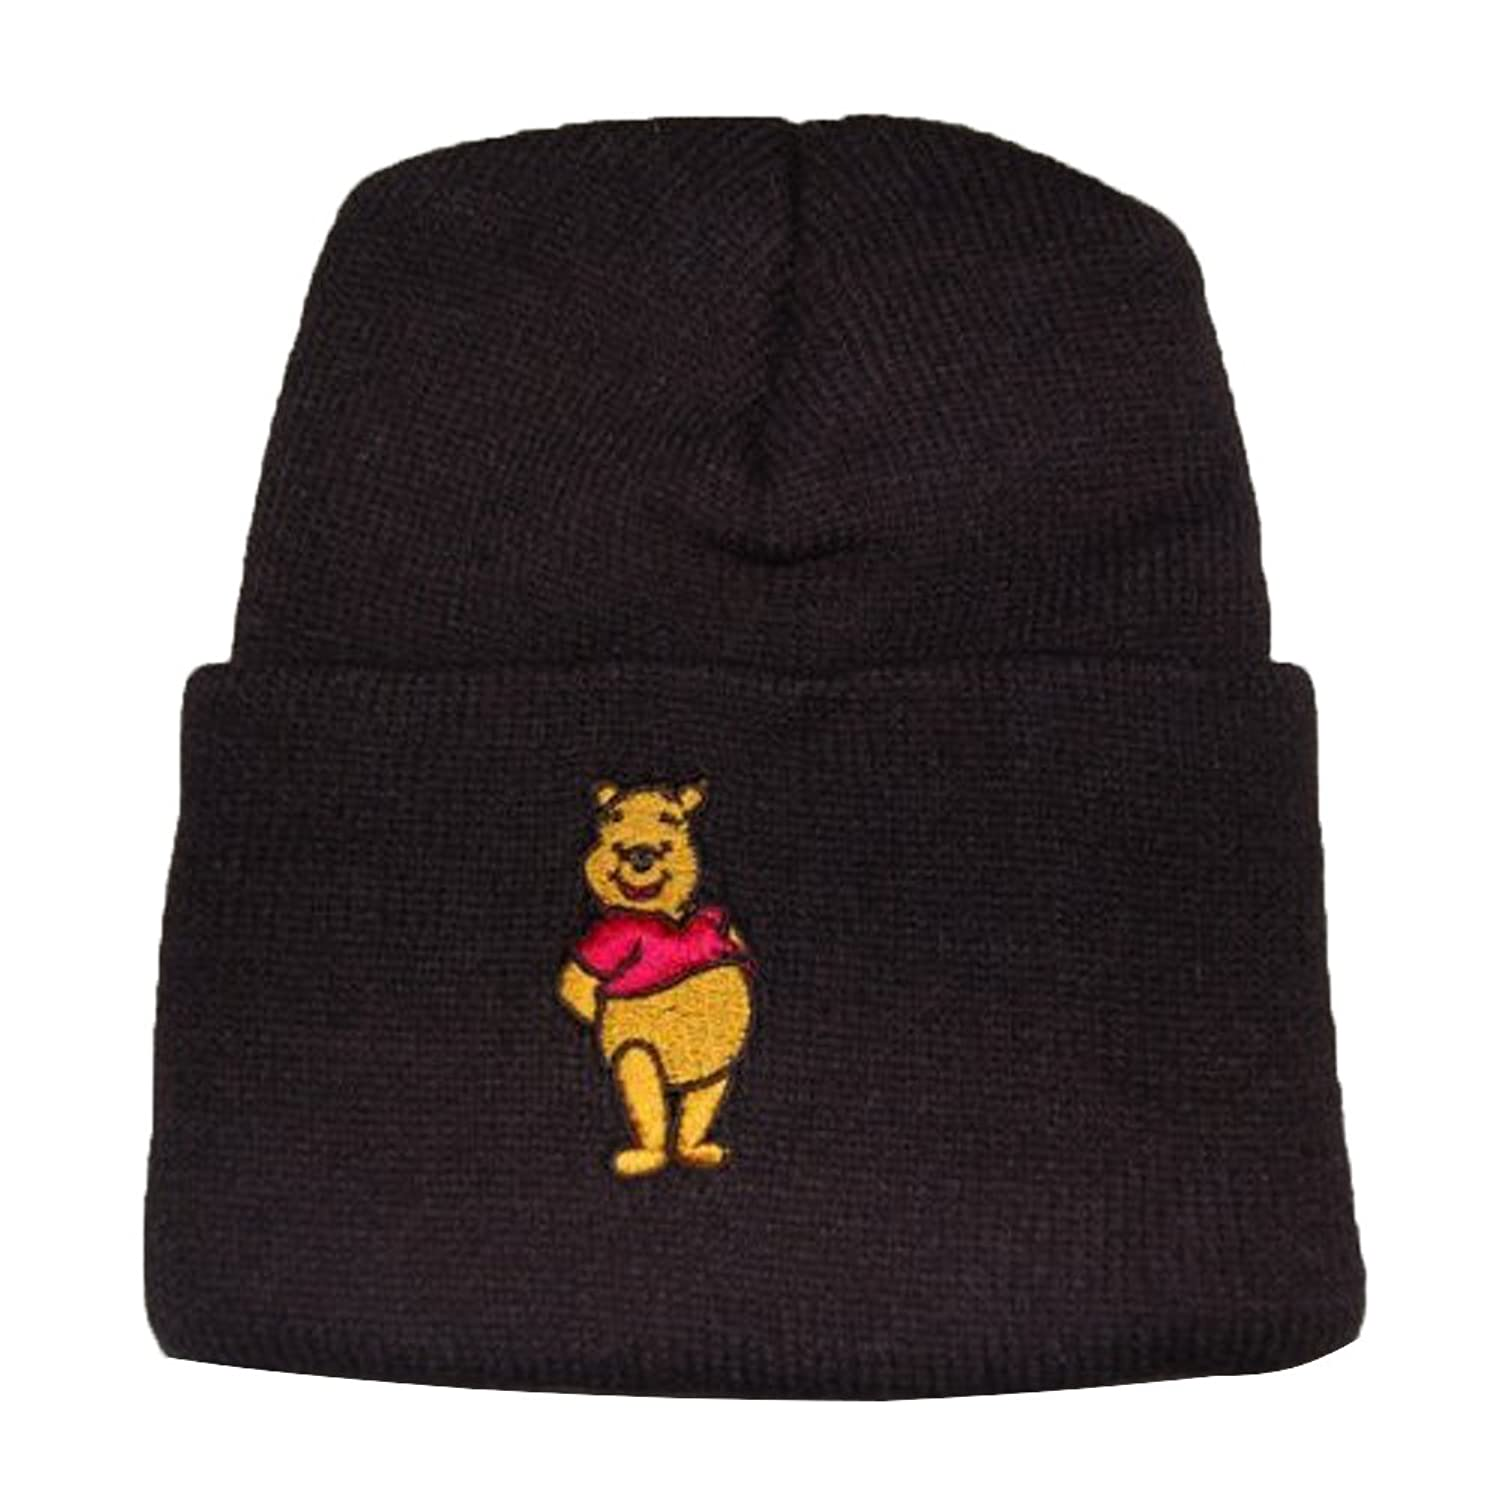 Youth Hat Winnie the Pooh Beanie - Cuff Black